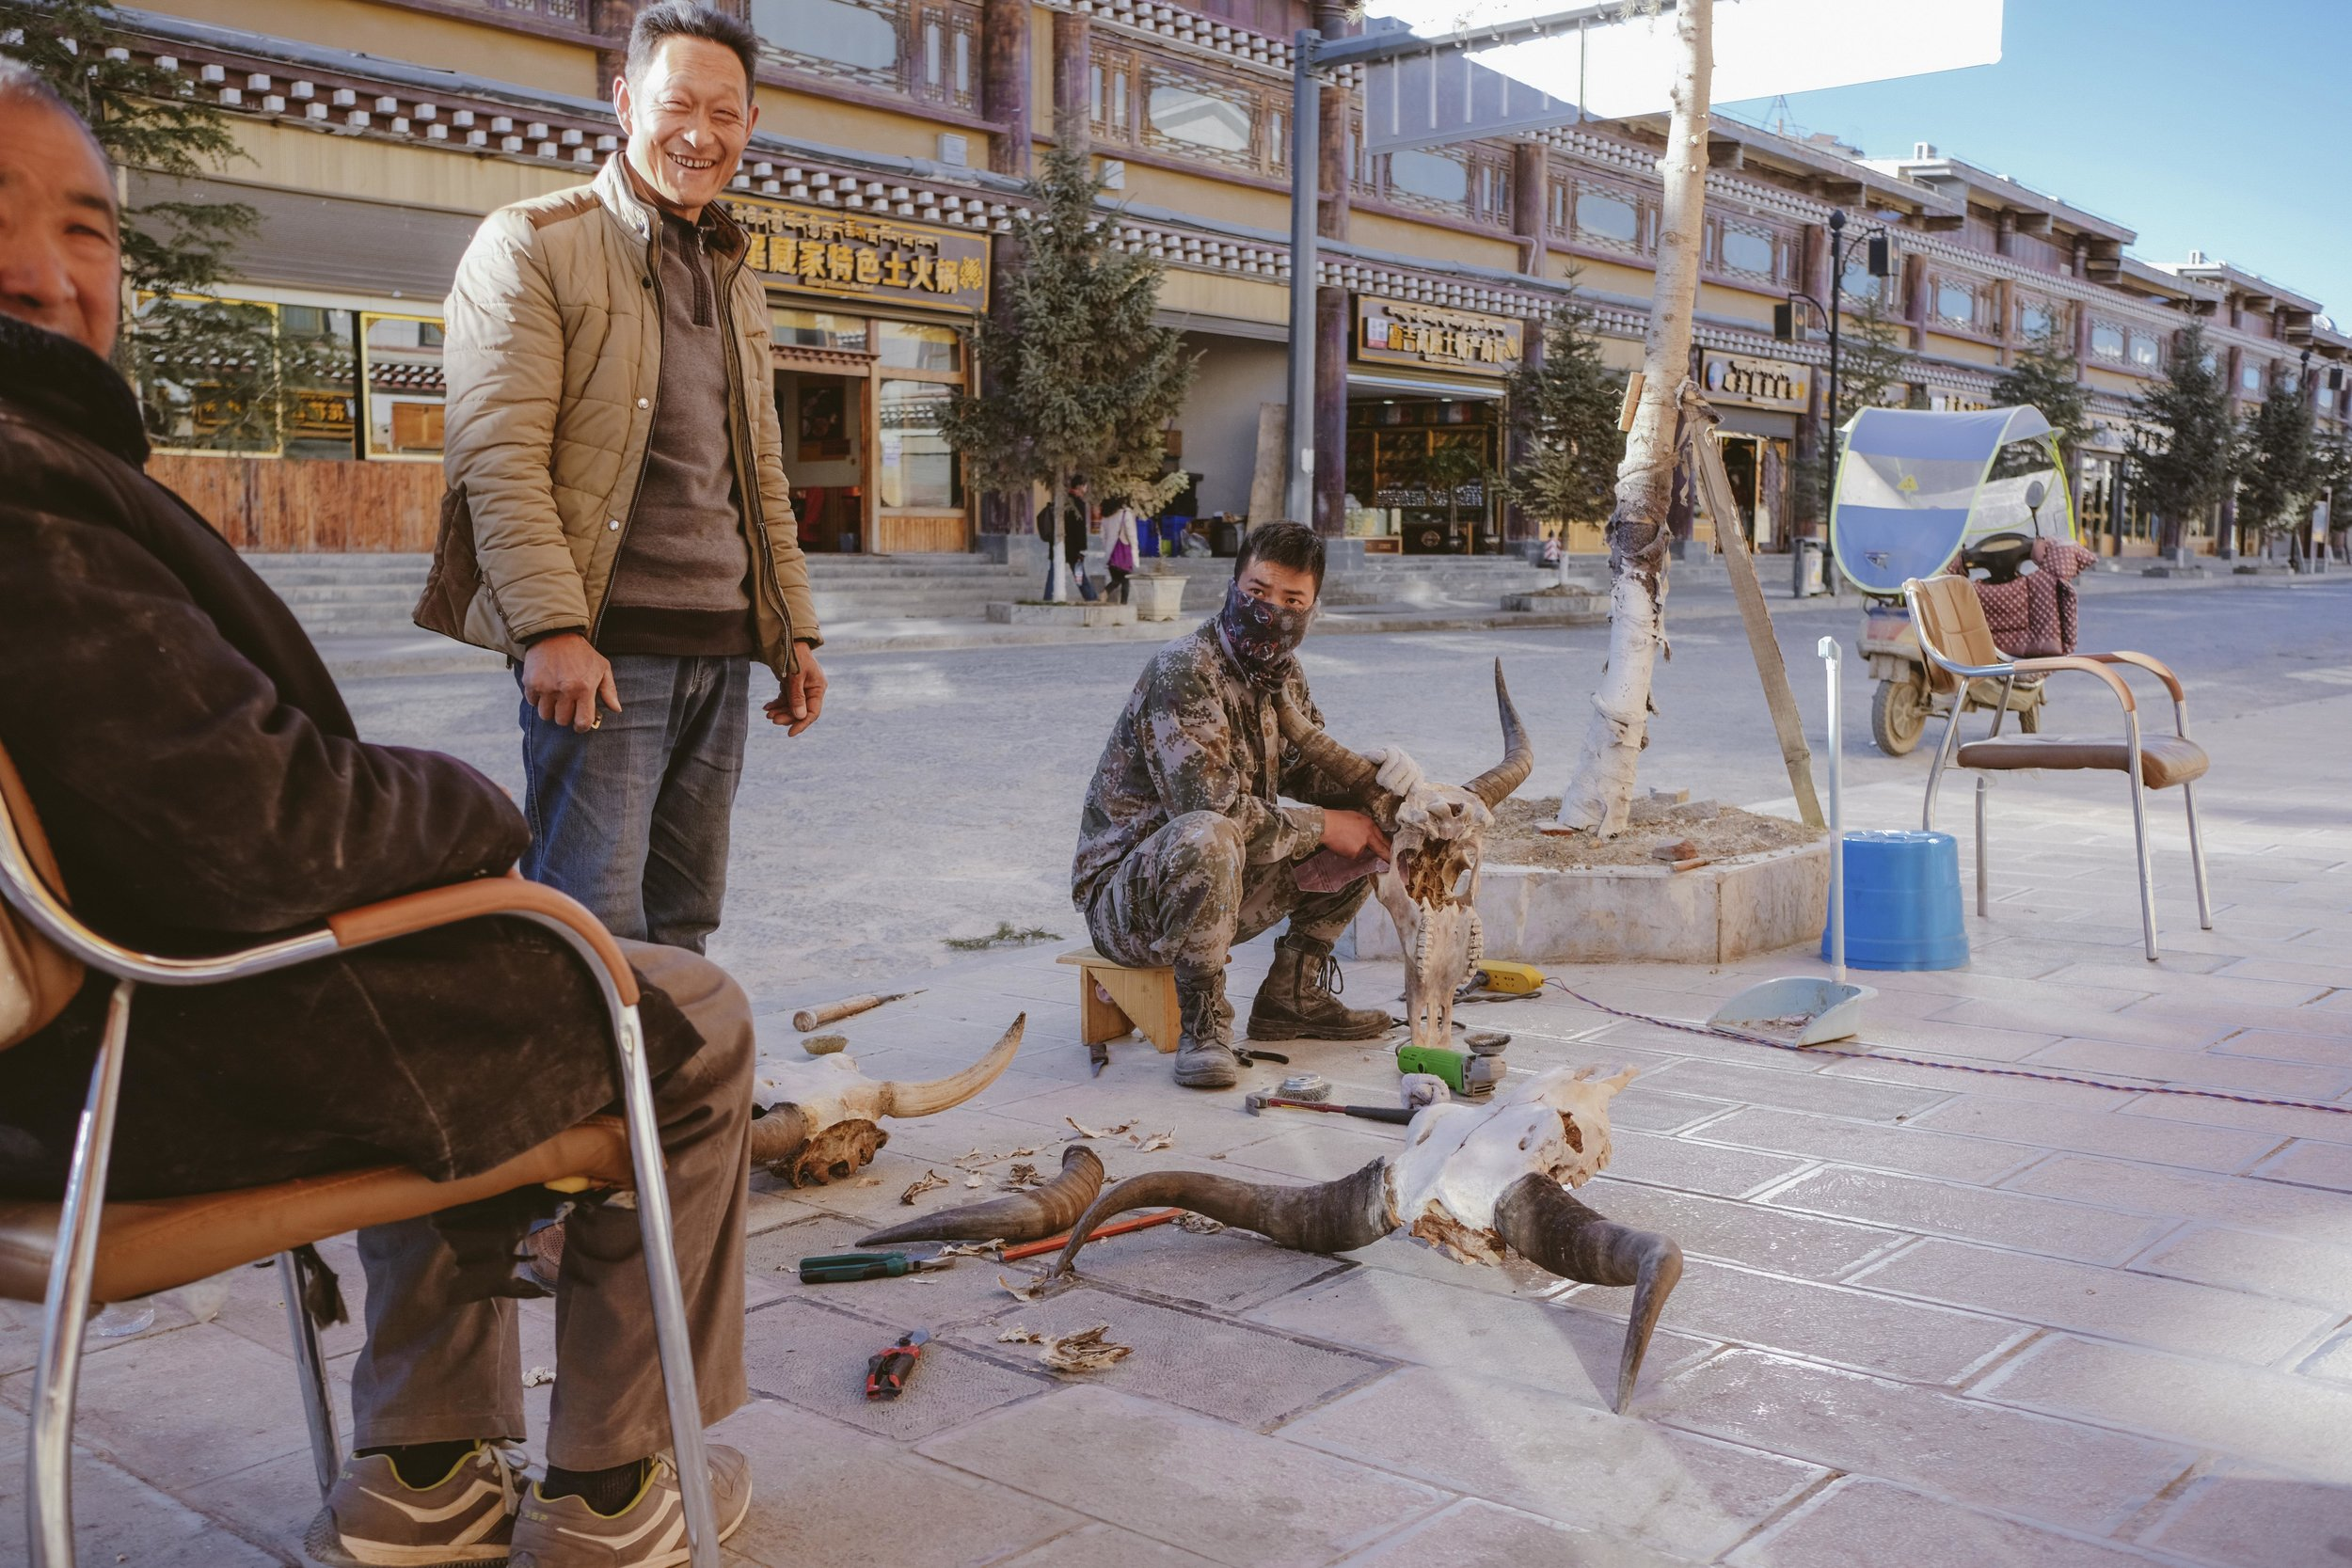 There's still a market for yak heads as ceremonial items, and what better place to polish them clean from gristle then out on the sidewalk.